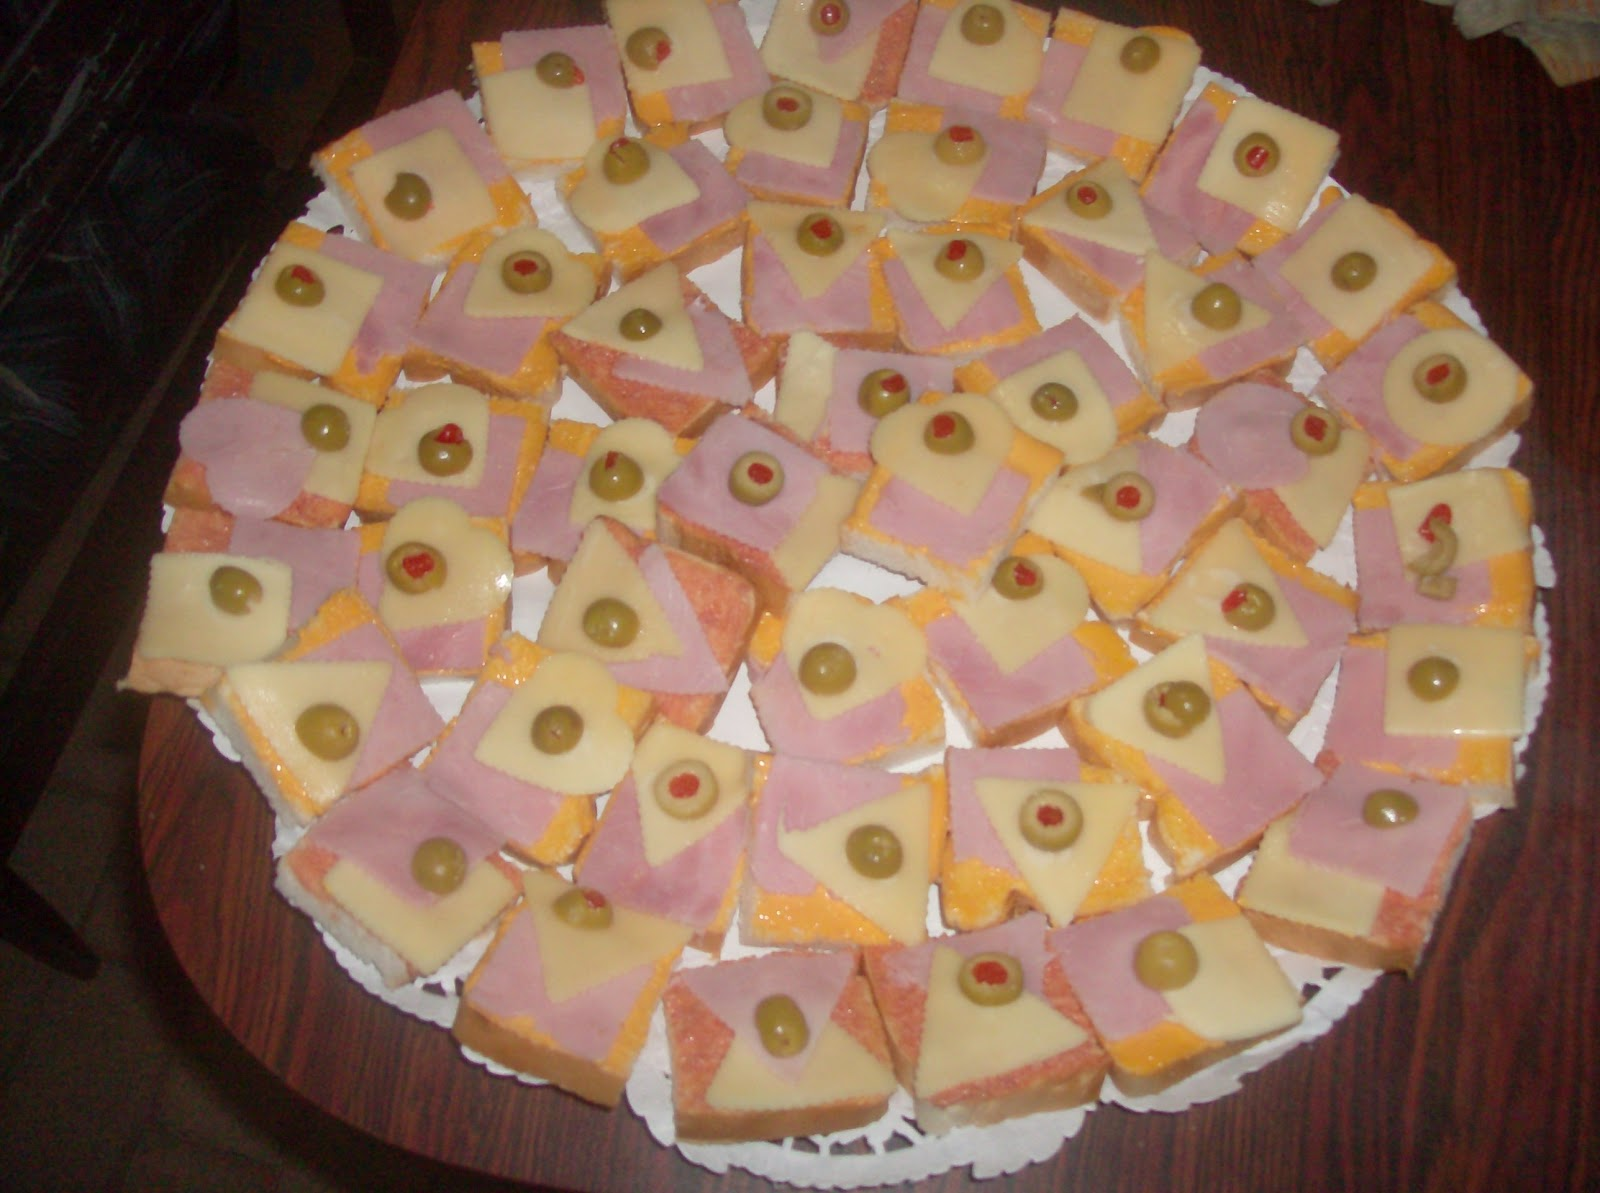 Christian rodr guez tortas y gelatinas decoradas for Canape de jamon y queso